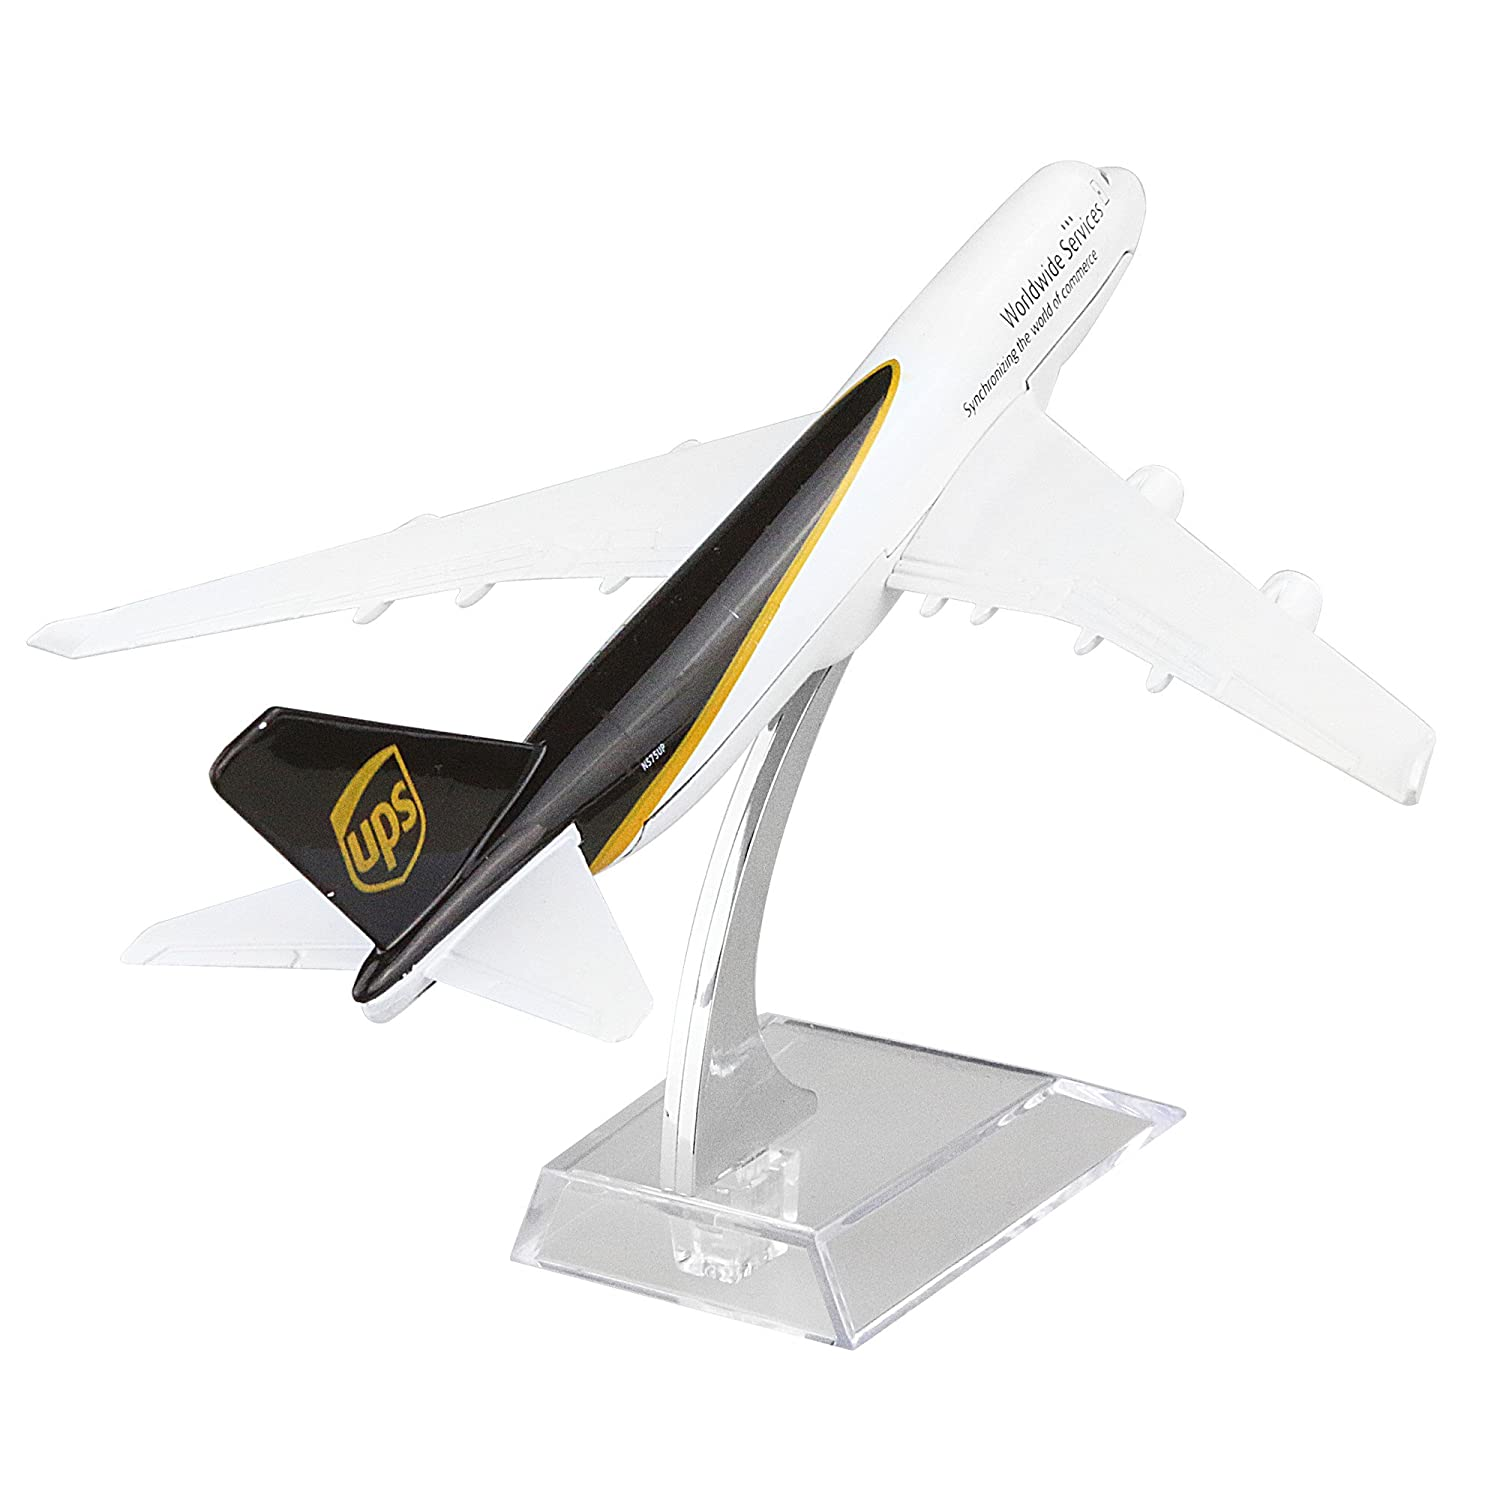 Diecast Airplane 1:400 American UPS B747 Metal (16cm) Plane Model Office Decoration or Gift by LESES